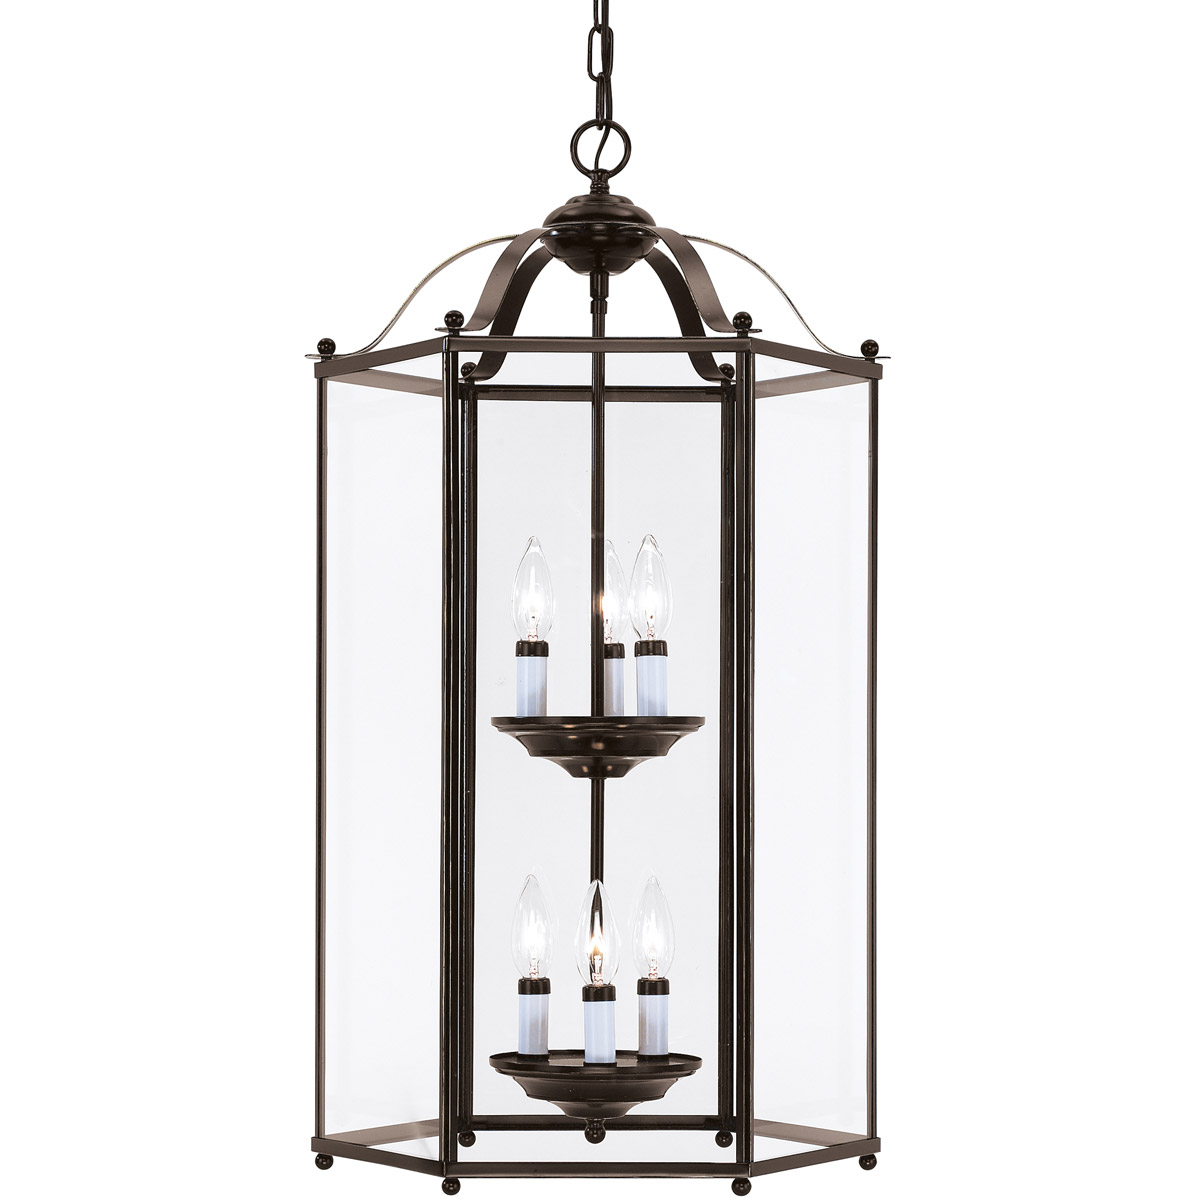 Sea Gull 5233-782 Bretton 6 Light 17 inch Heirloom Bronze Foyer Pendant Ceiling Light photo